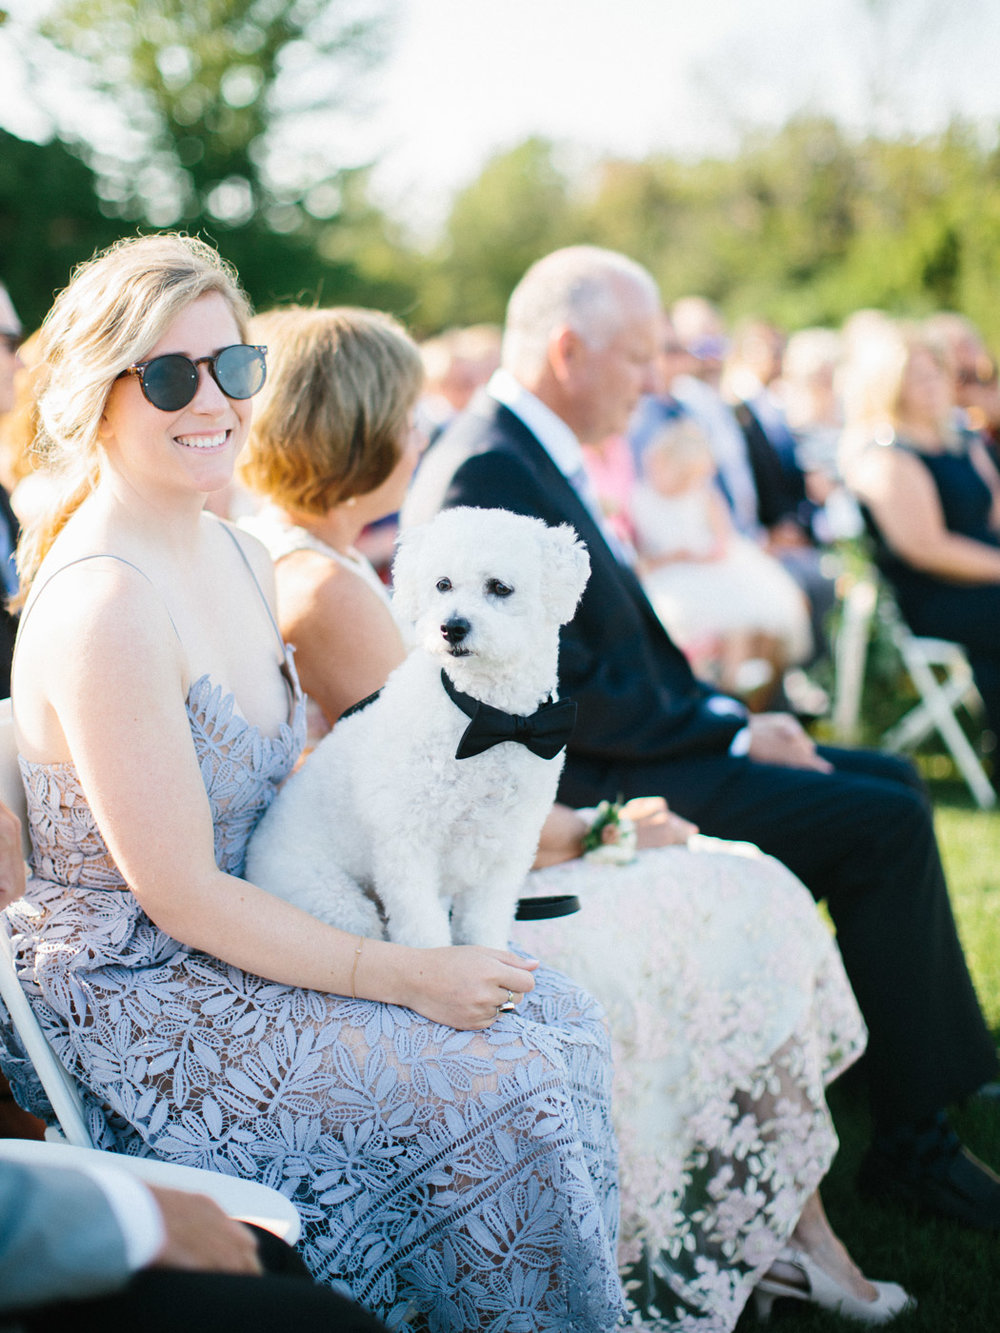 Include_dogs_in_your_wedding_photographs13.jpg